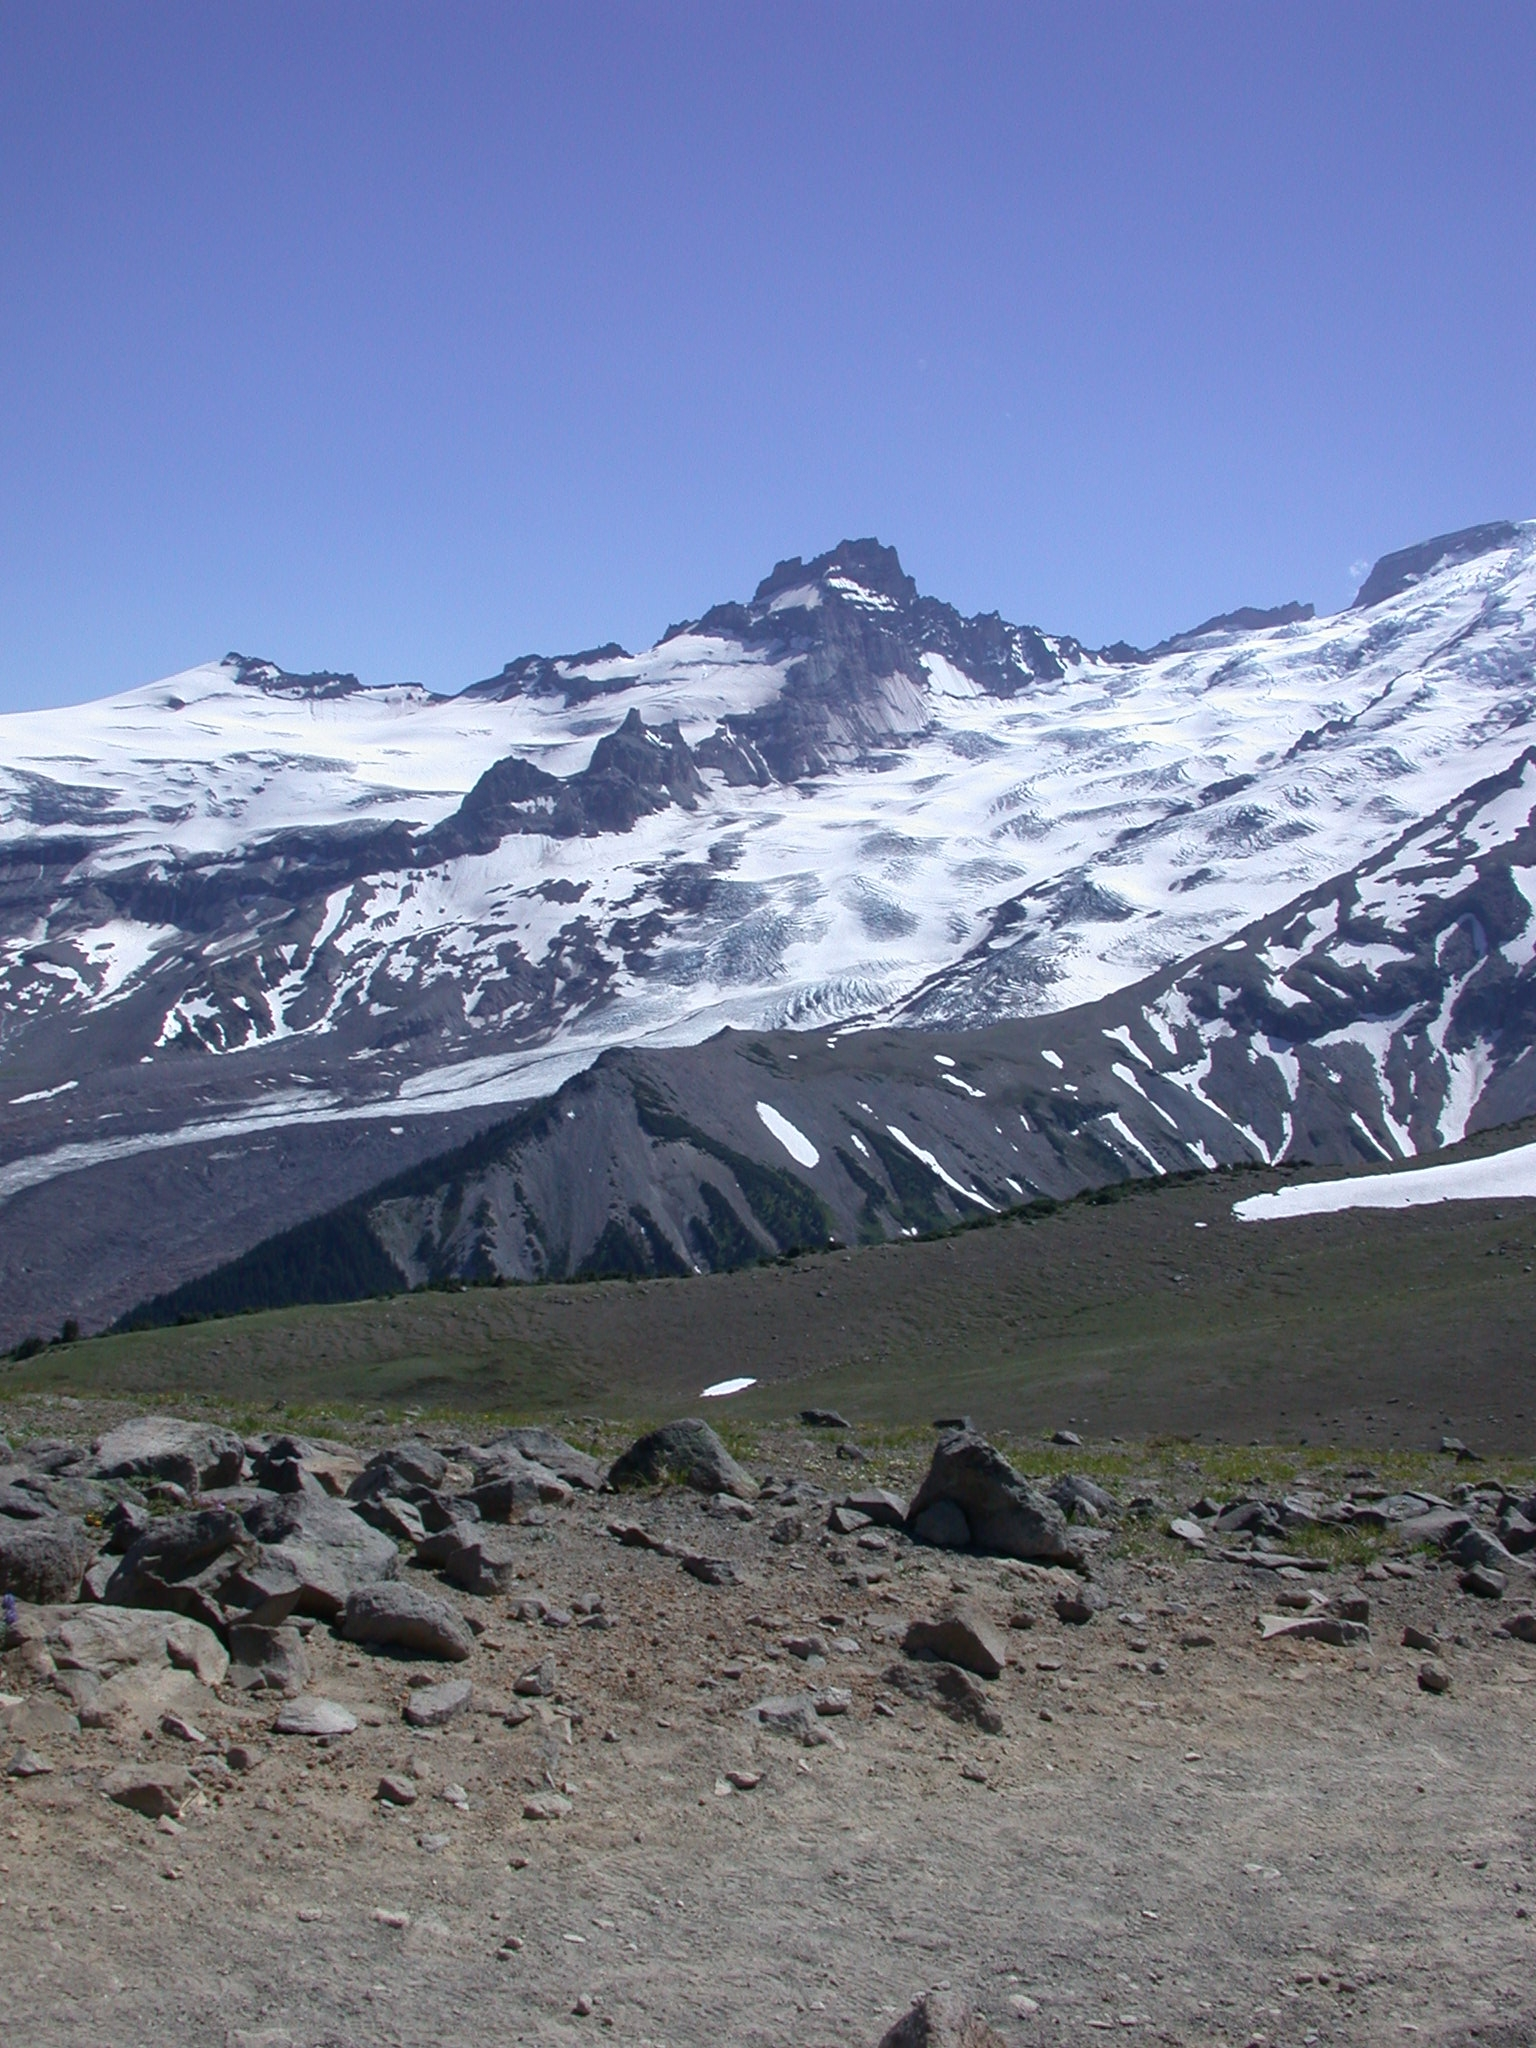 View of Another Peak From Burroughs Peak II on Mount Rainier